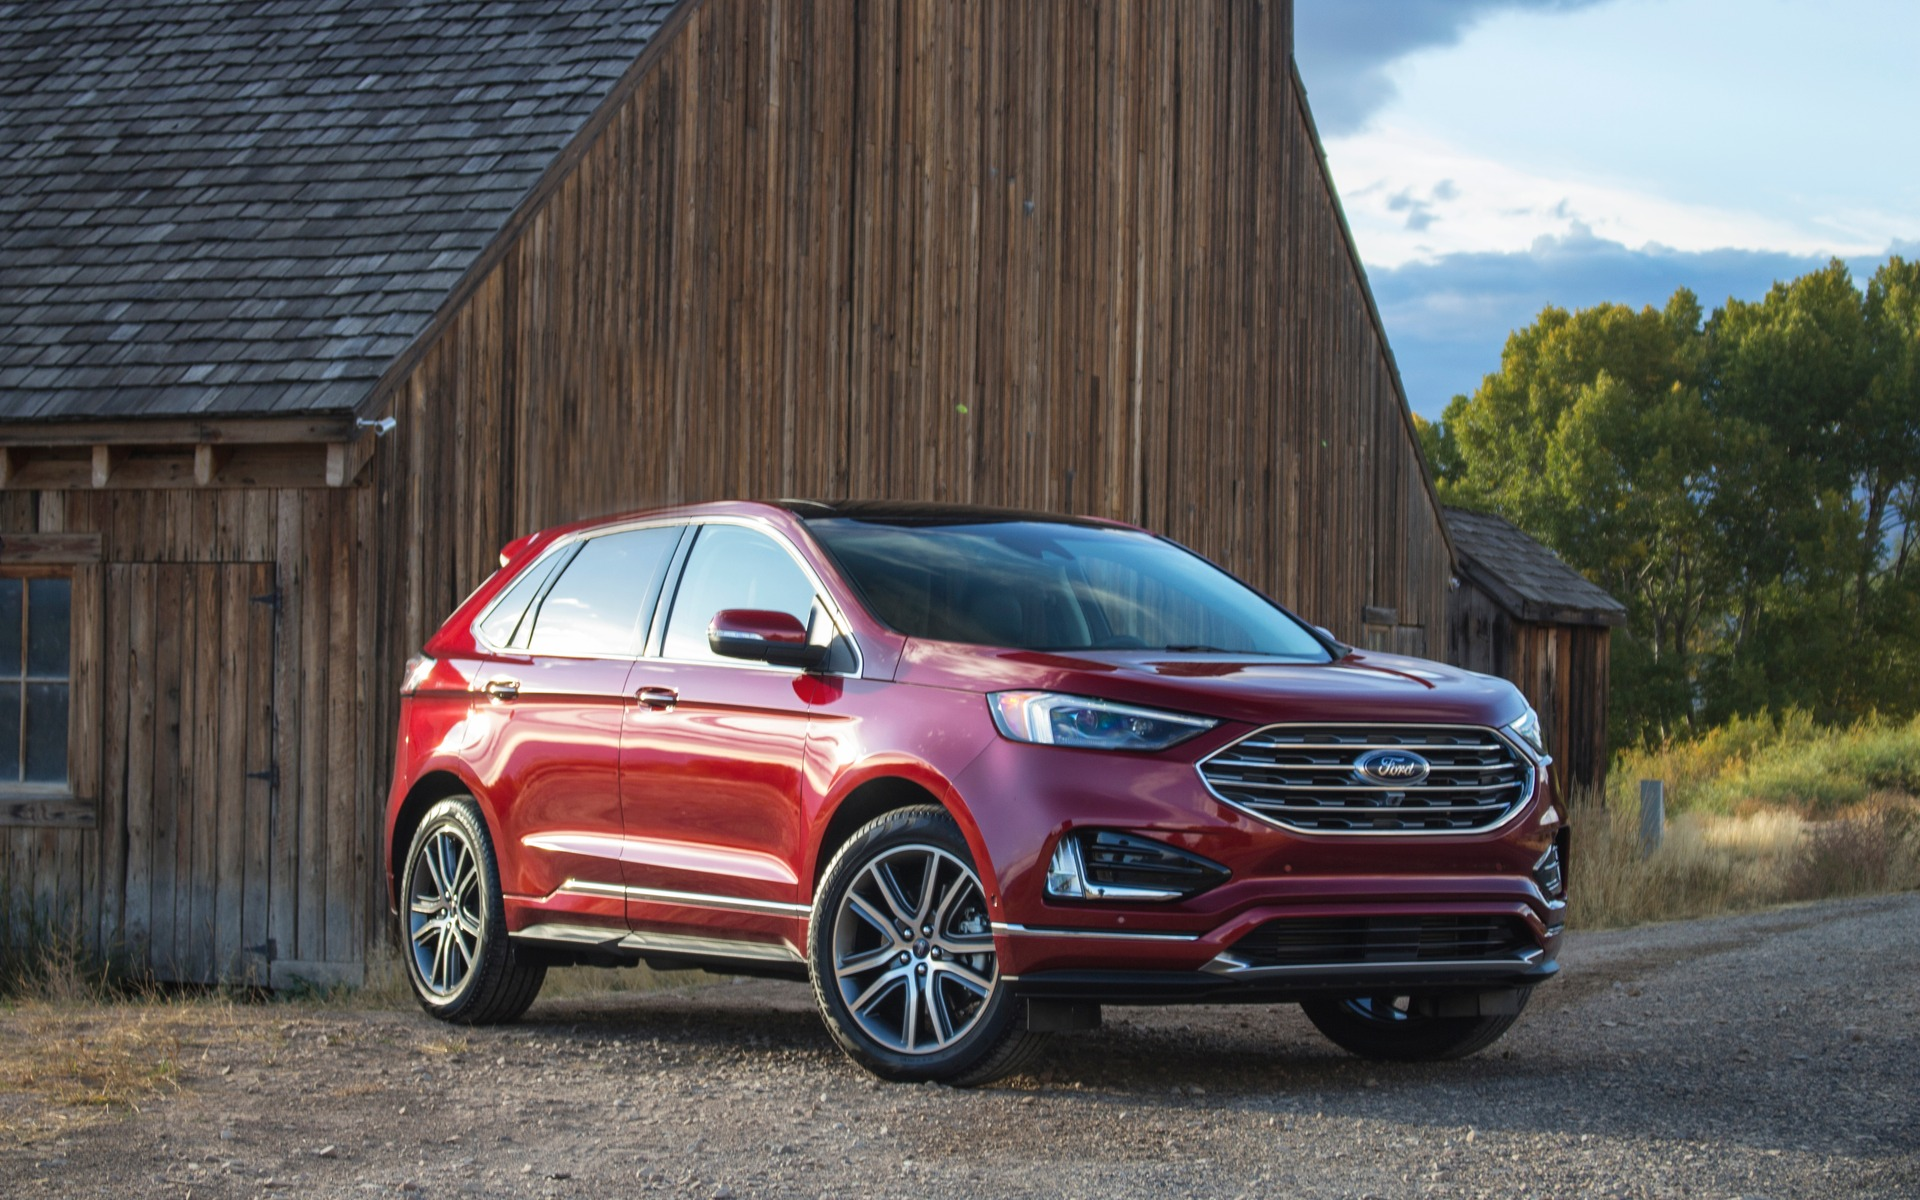 2019 Ford Edge: Focusing on What Pays Well